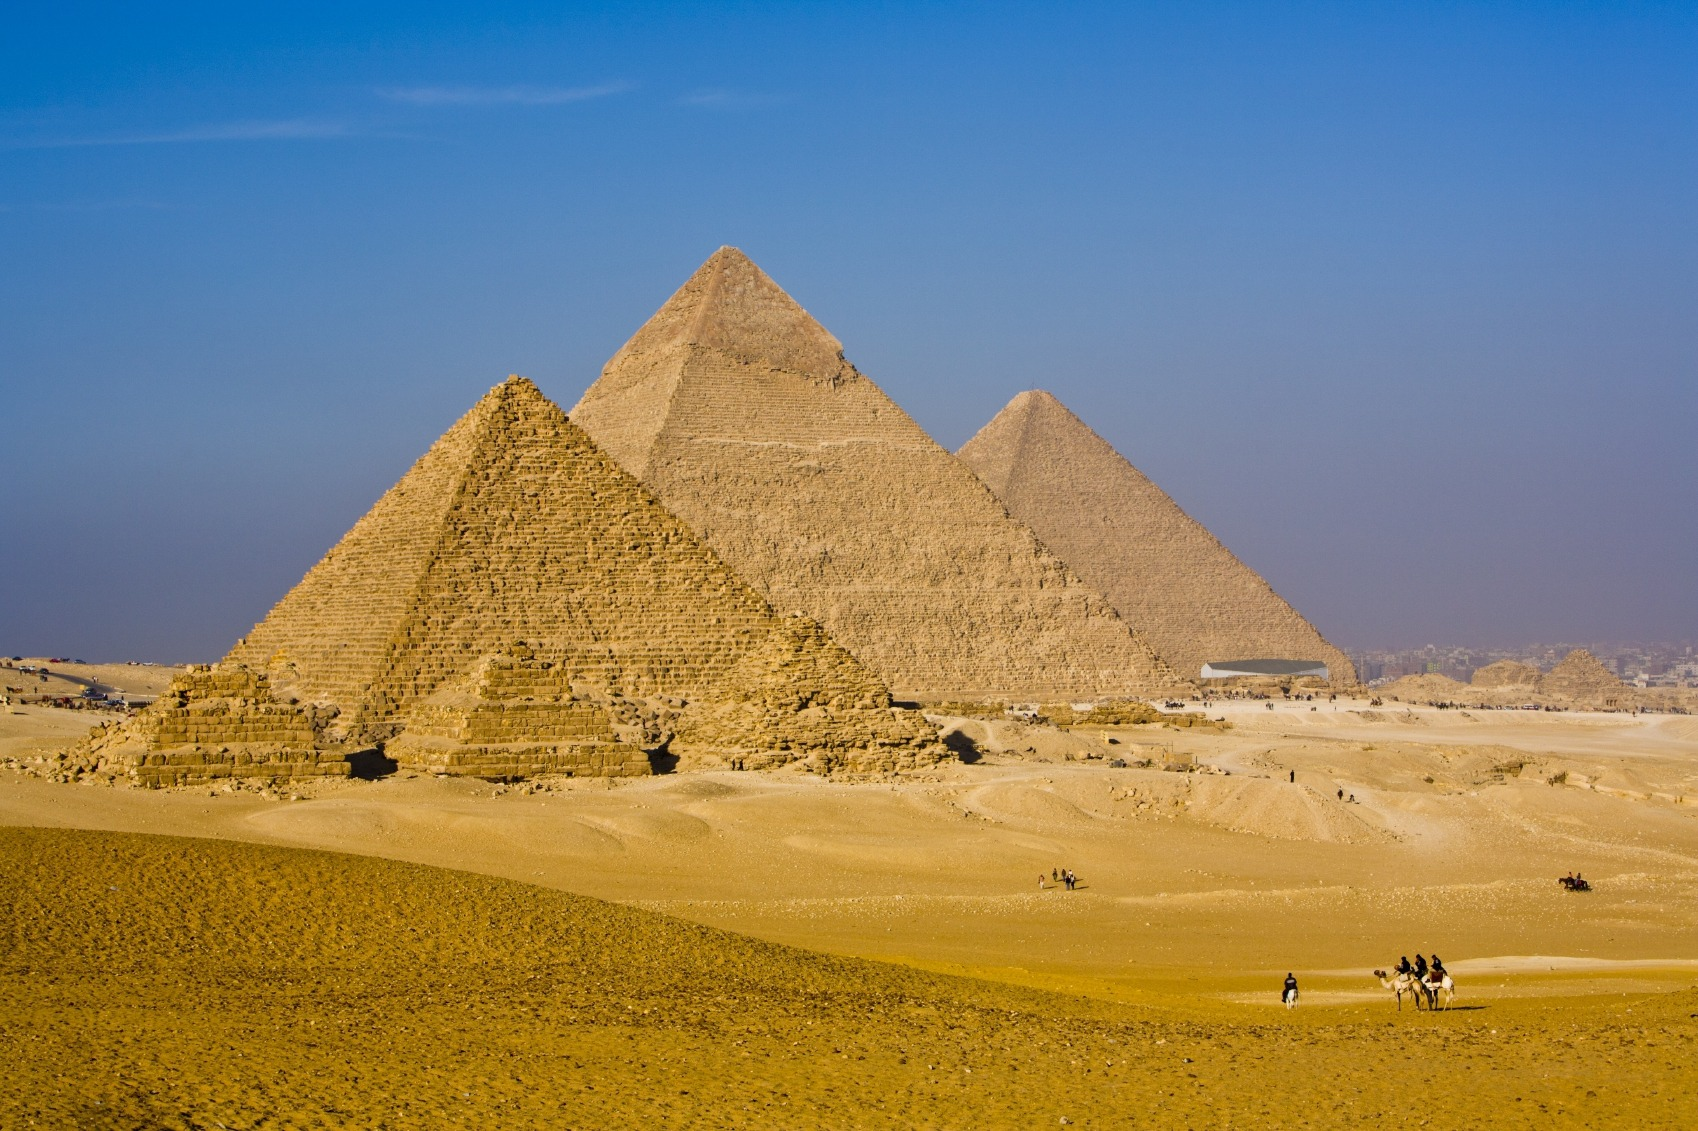 Amazing Great Pyramids of Giza, Egypt iStock_000015224988_Medium